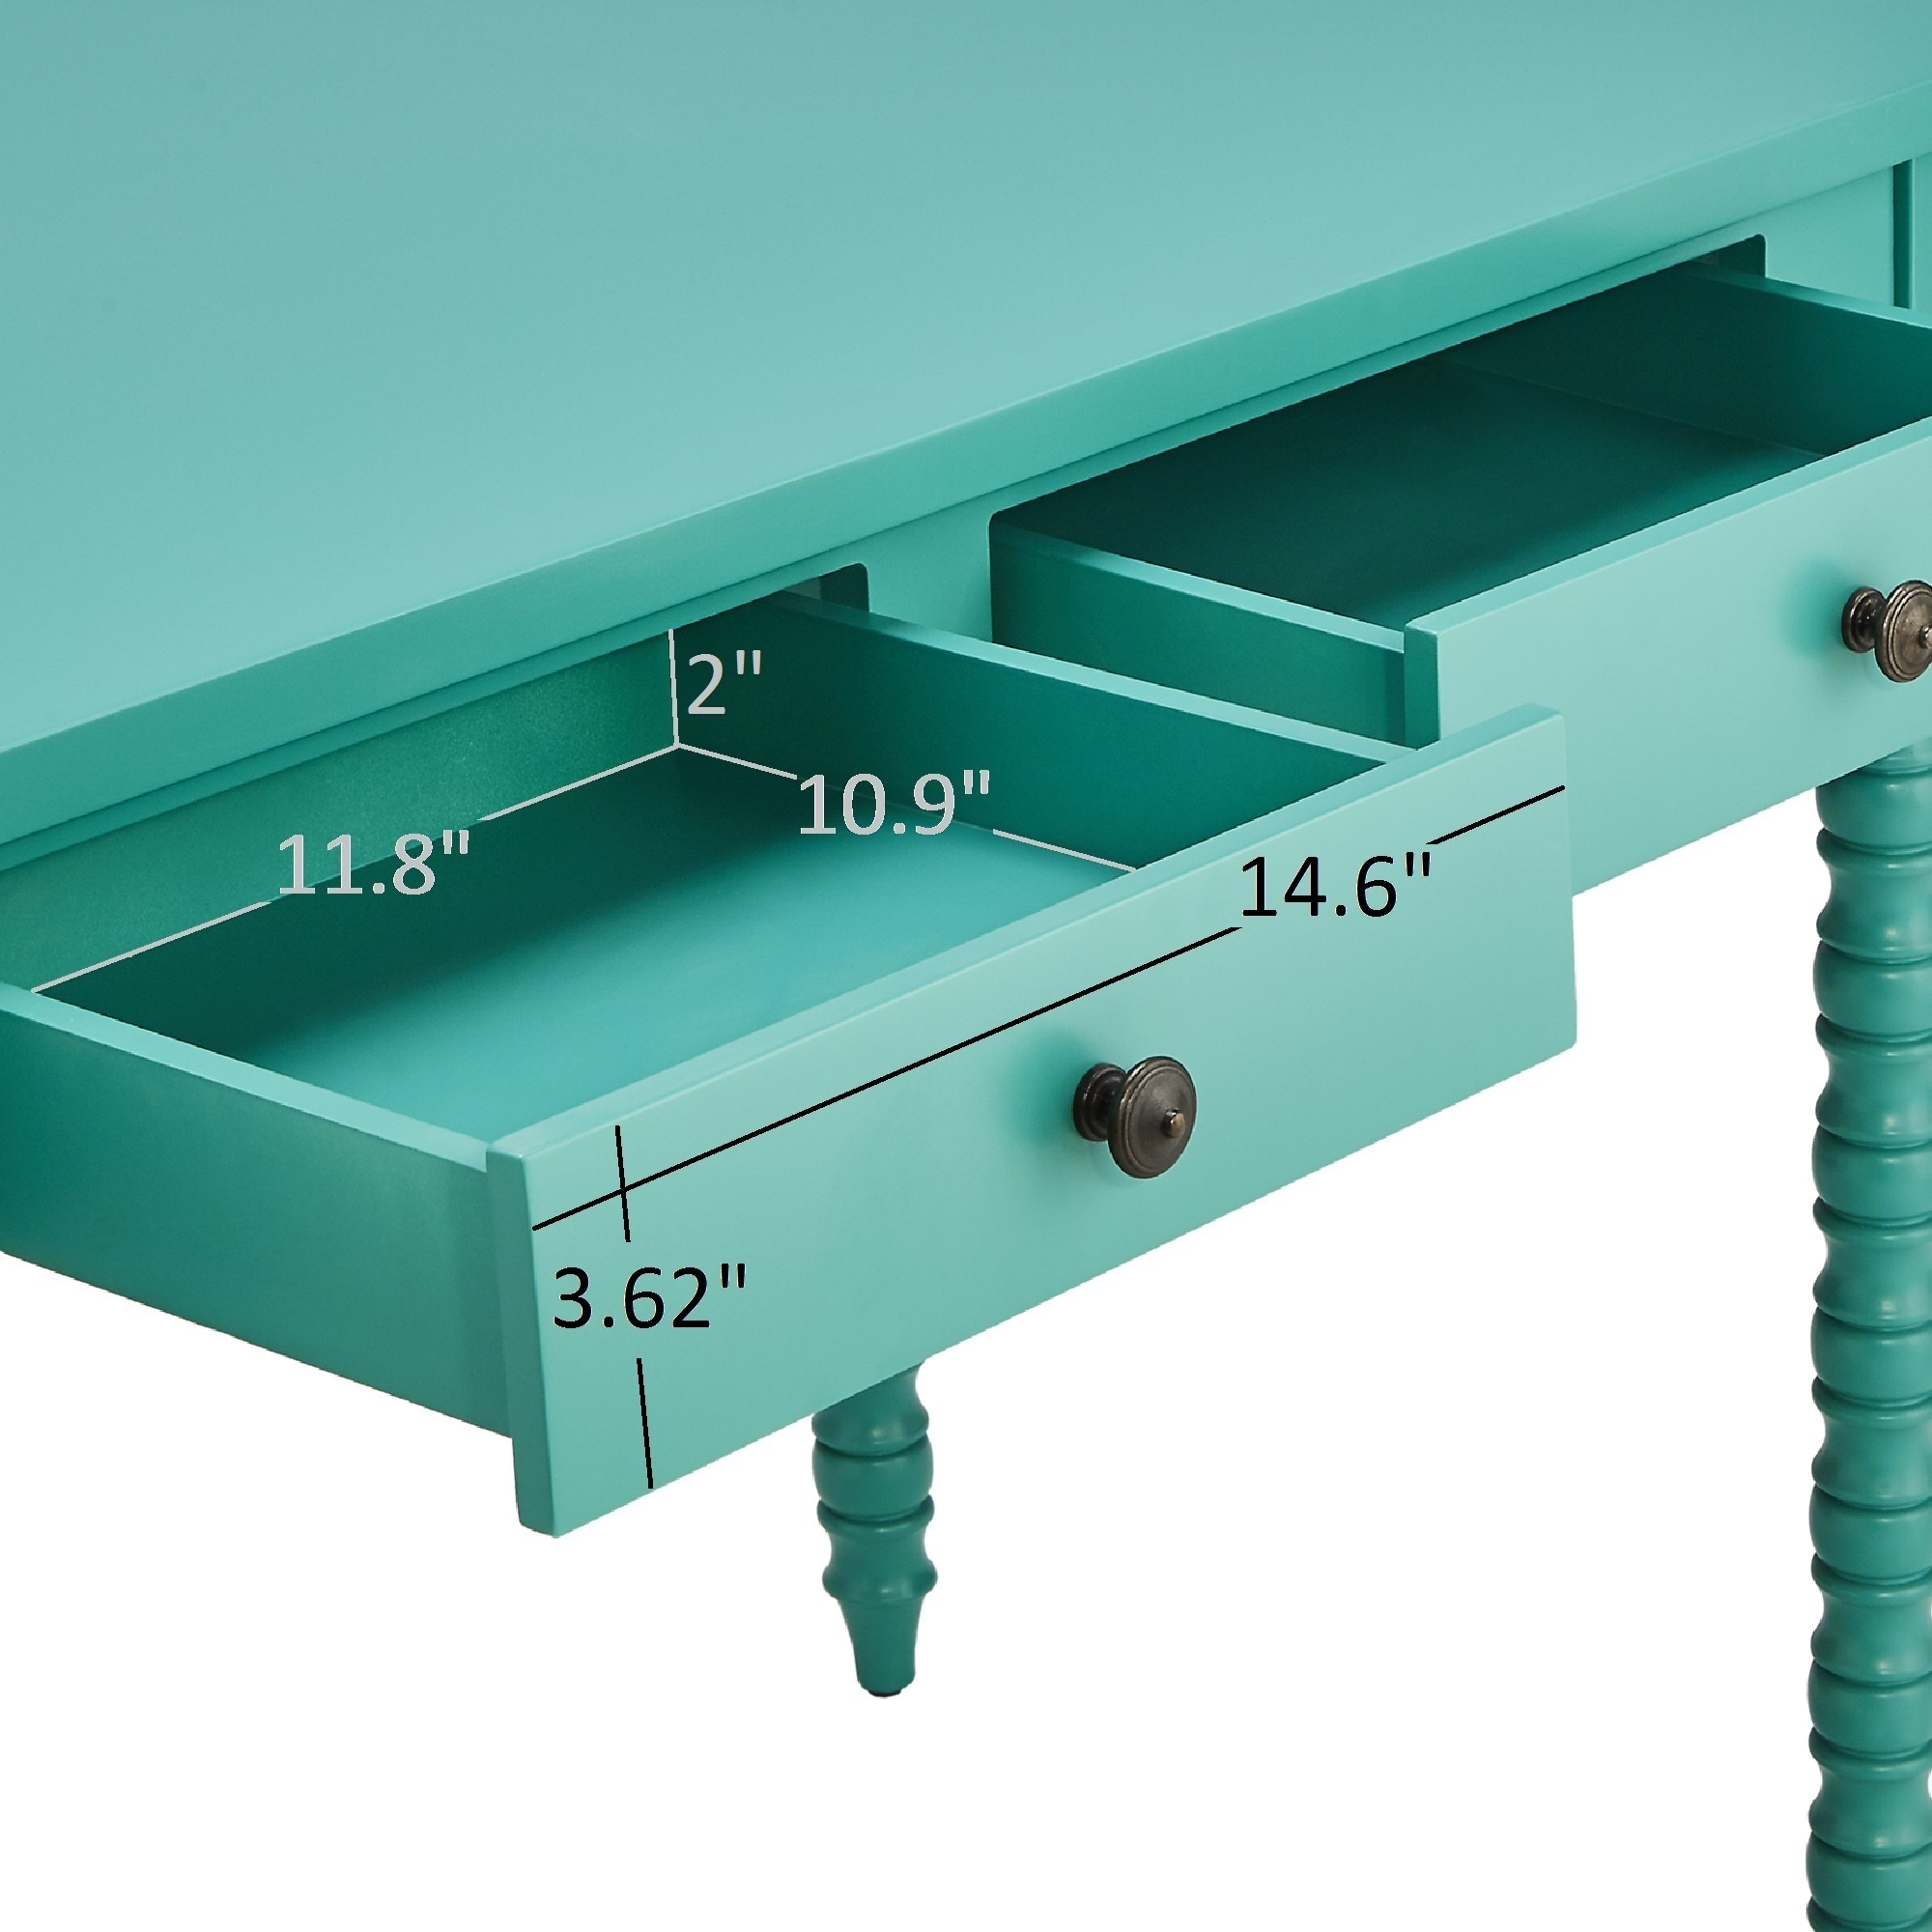 organization set zoom aqua hi res loading desk poppin base home teal